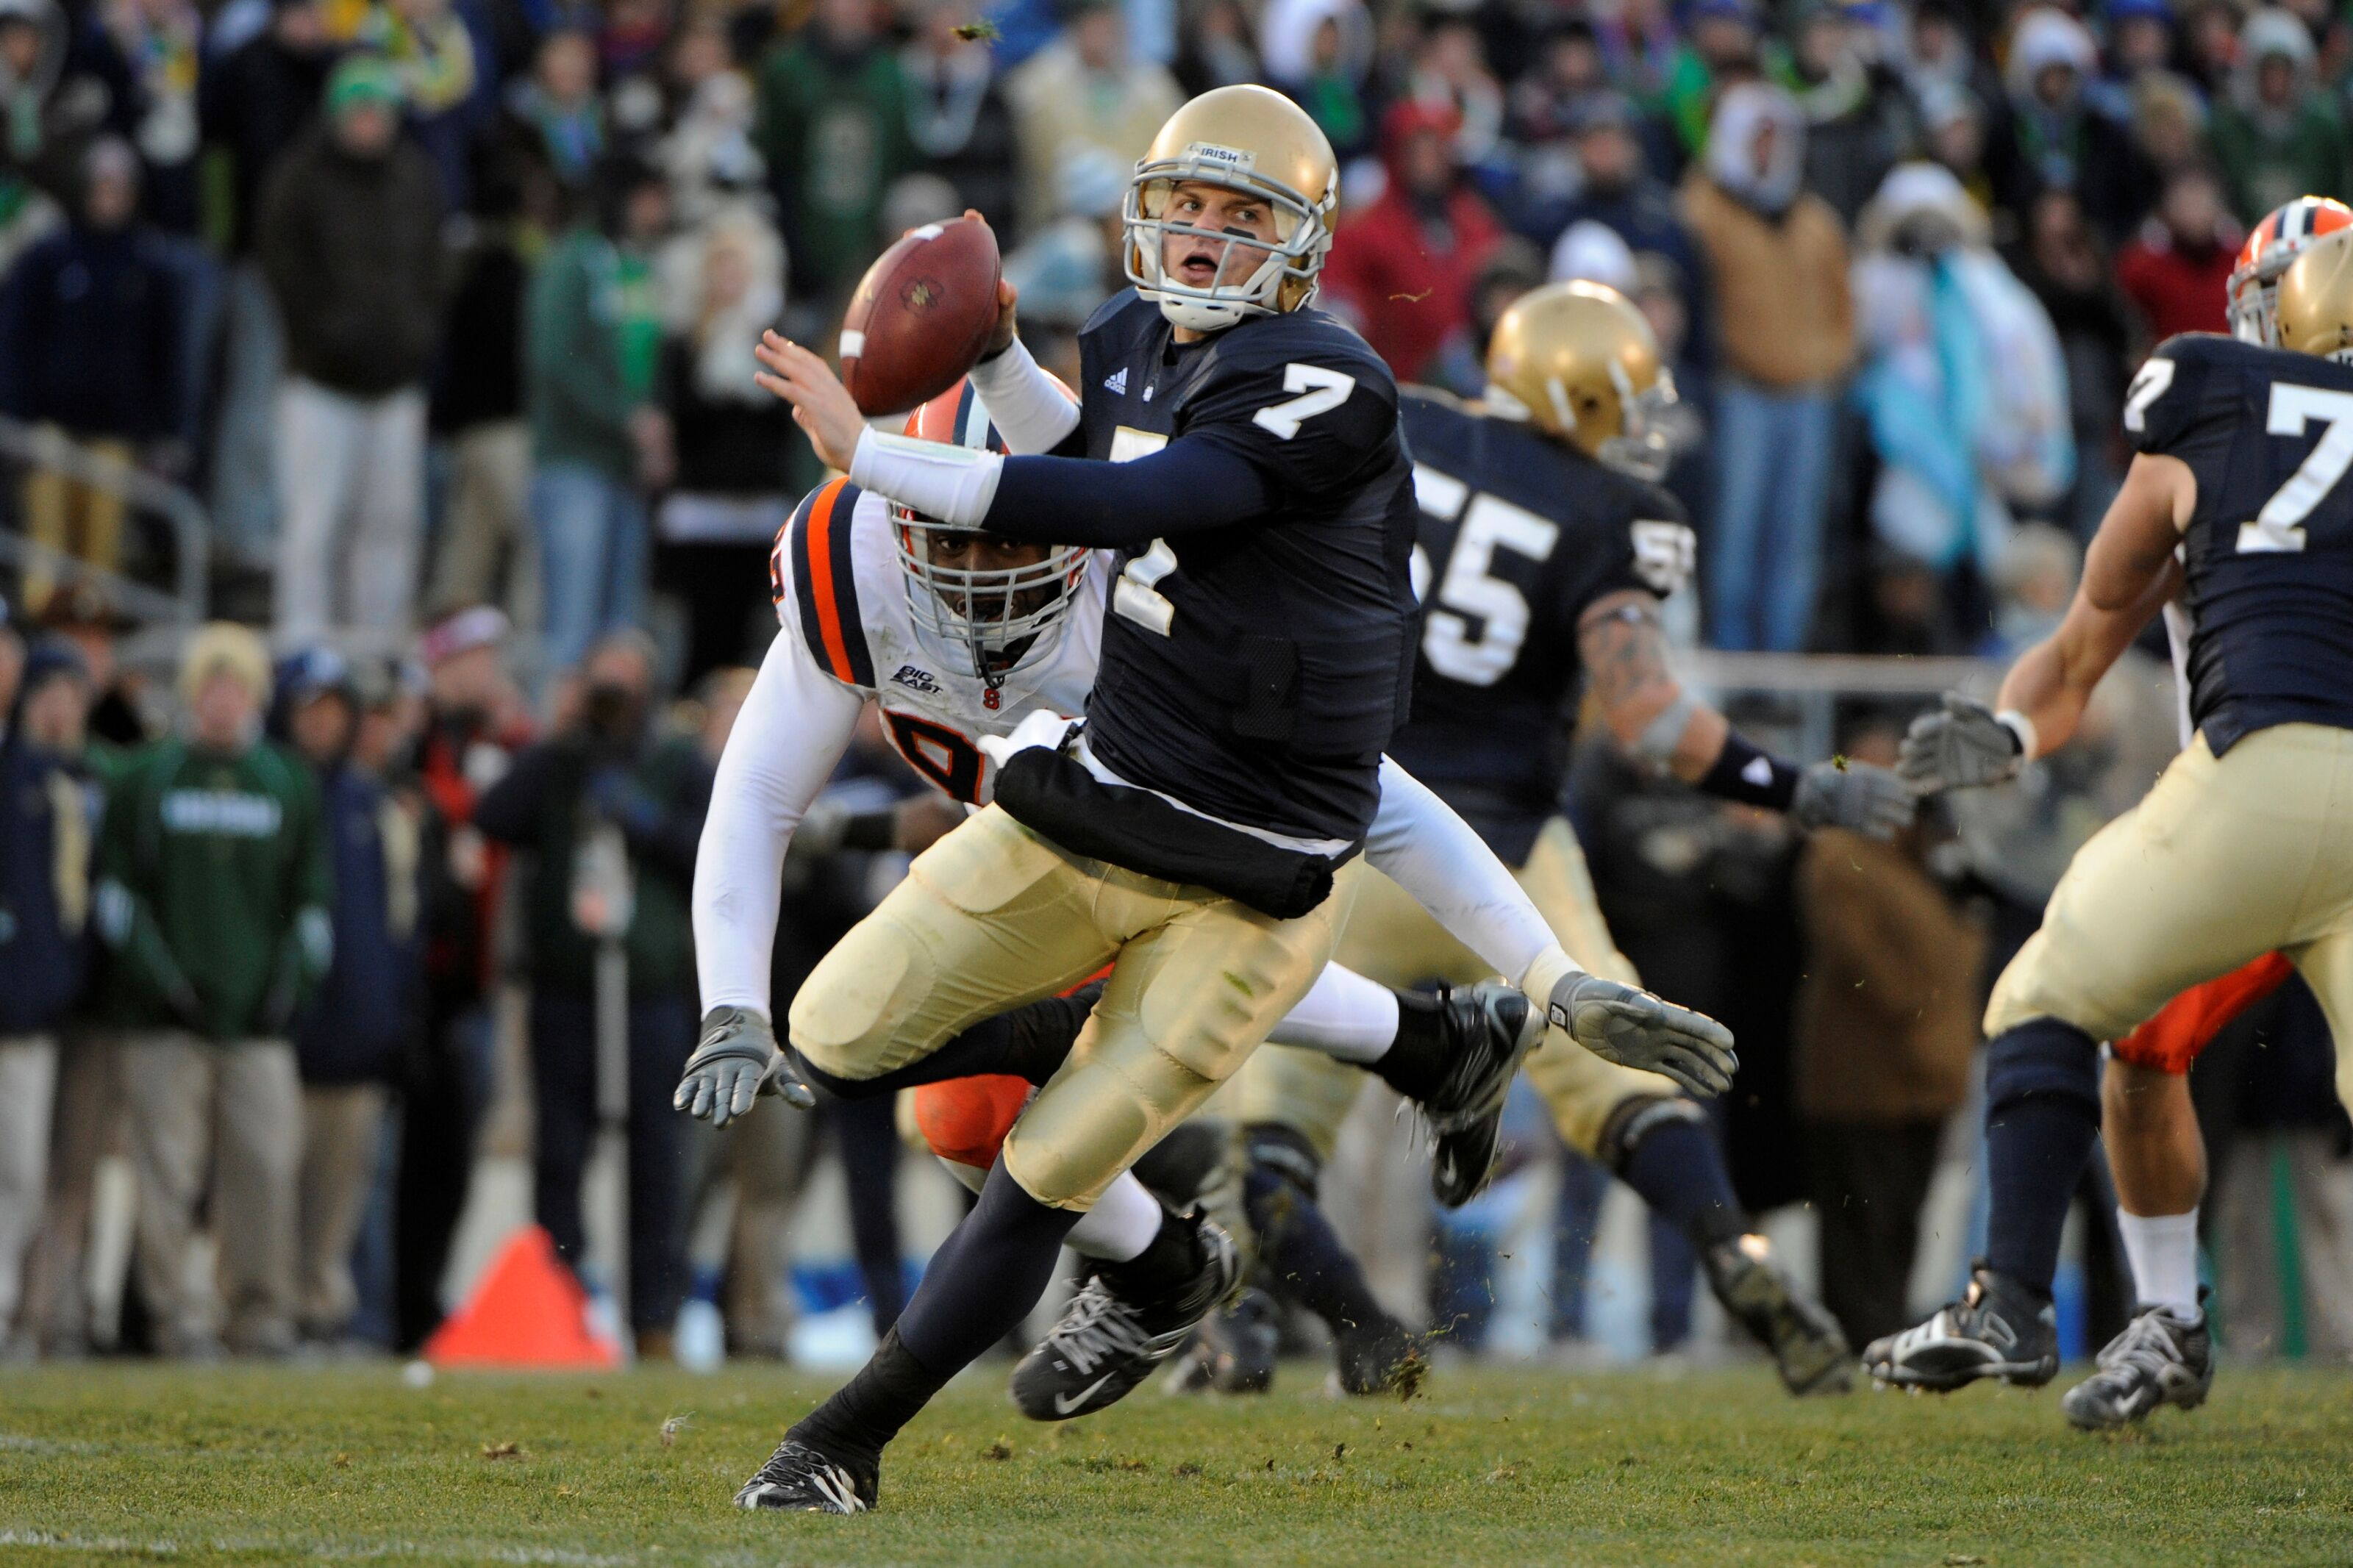 Throwback Thursday: Syracuse shocks Notre Dame in 2008